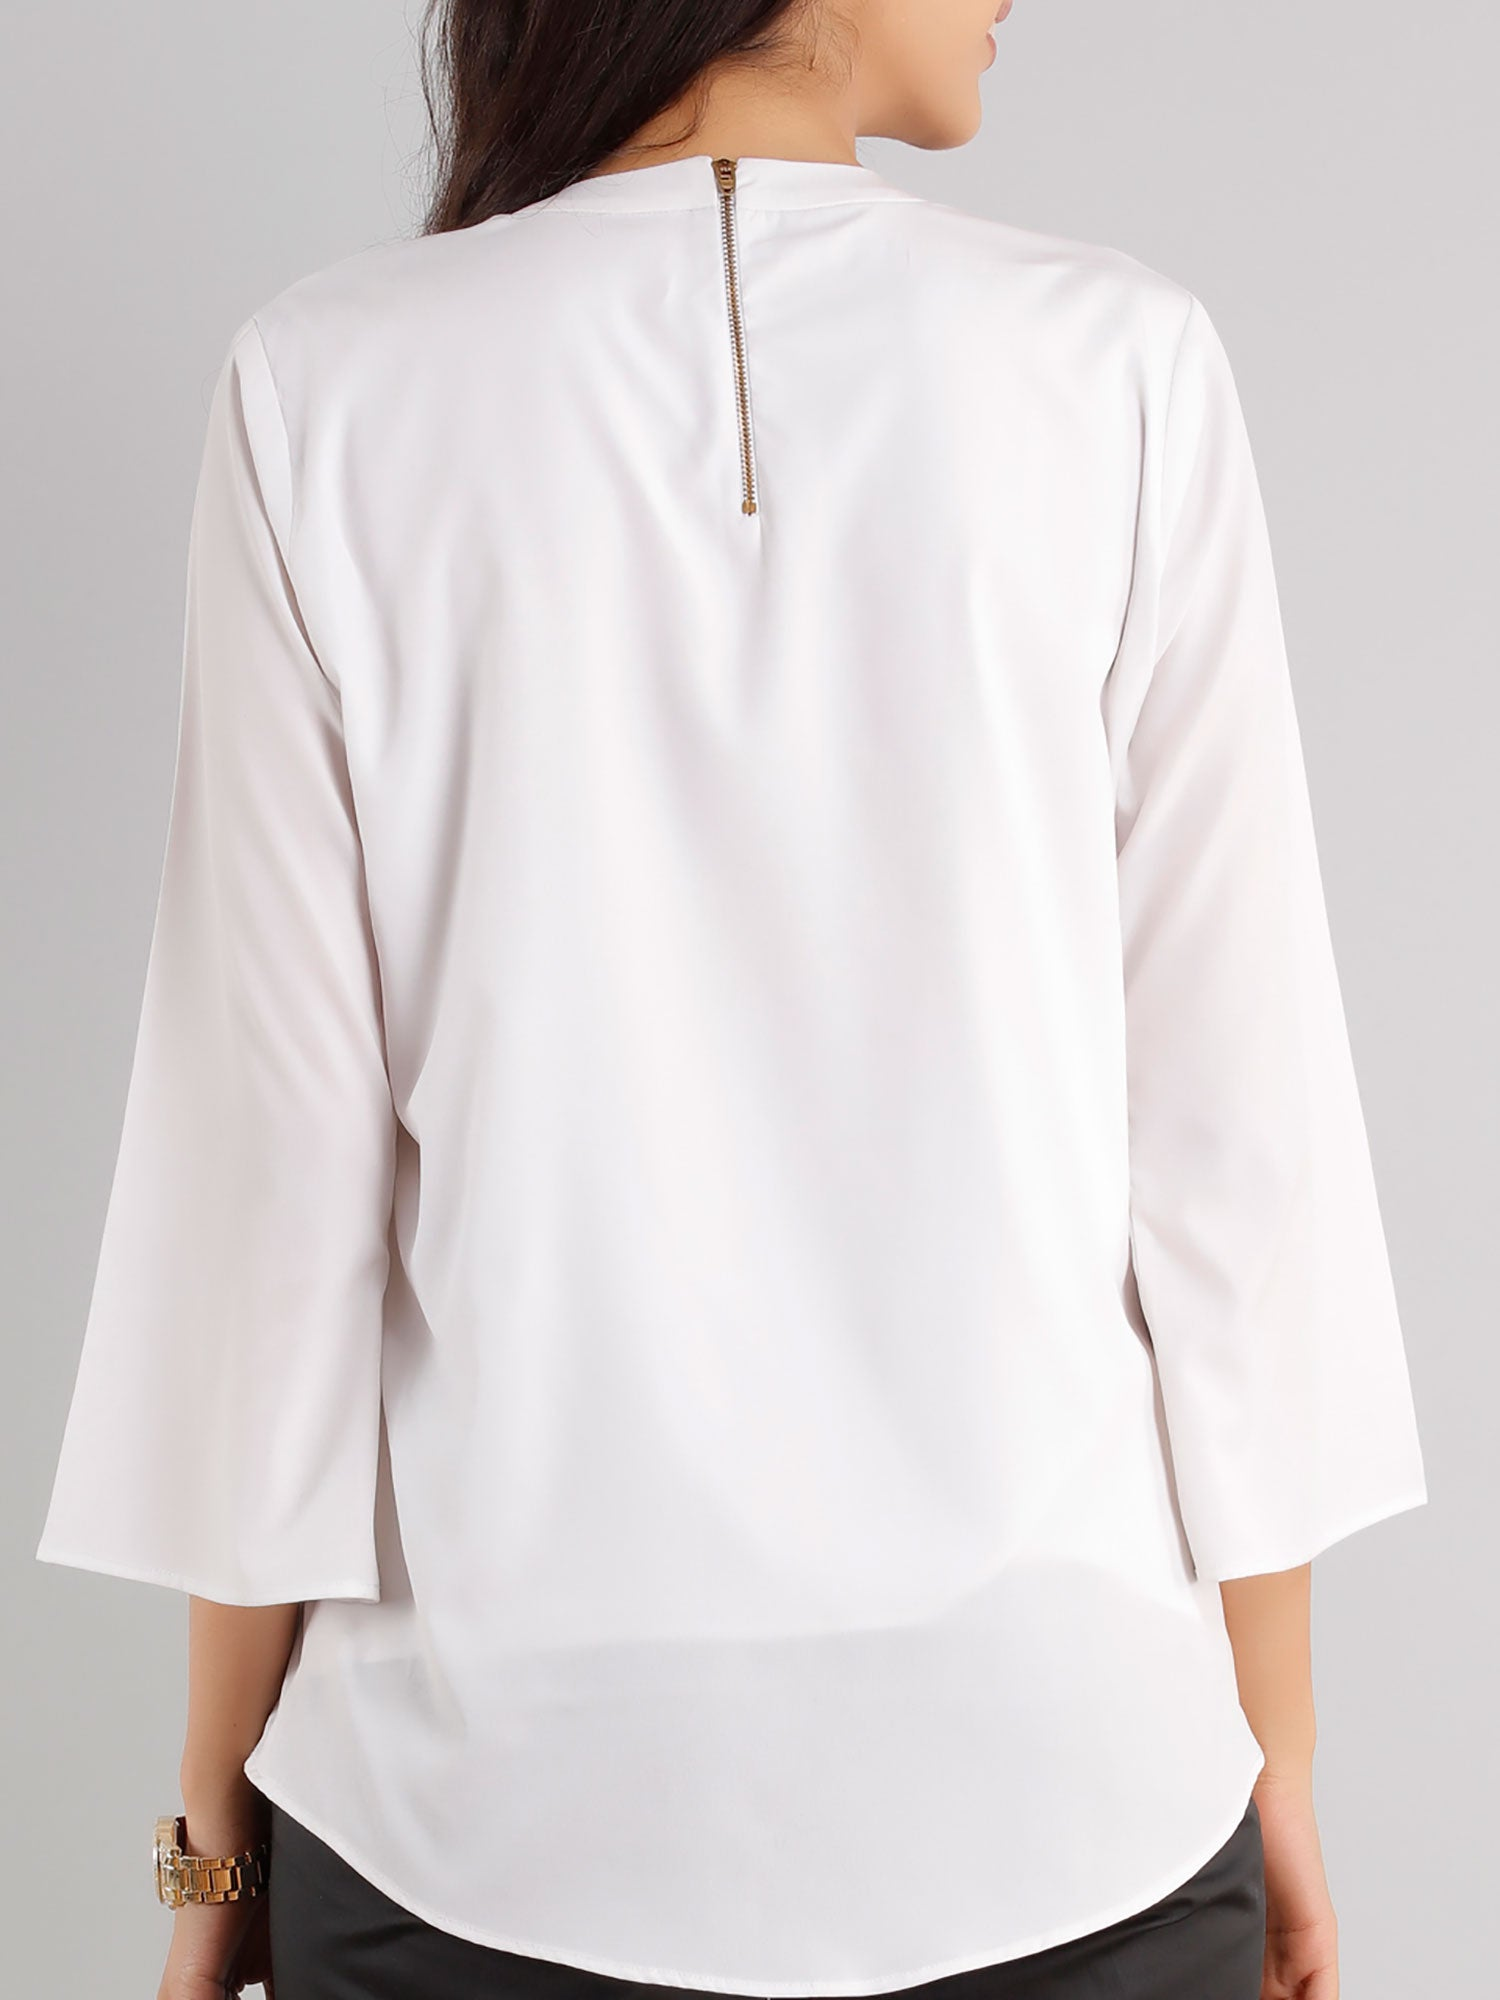 Bell Sleeve Top - White